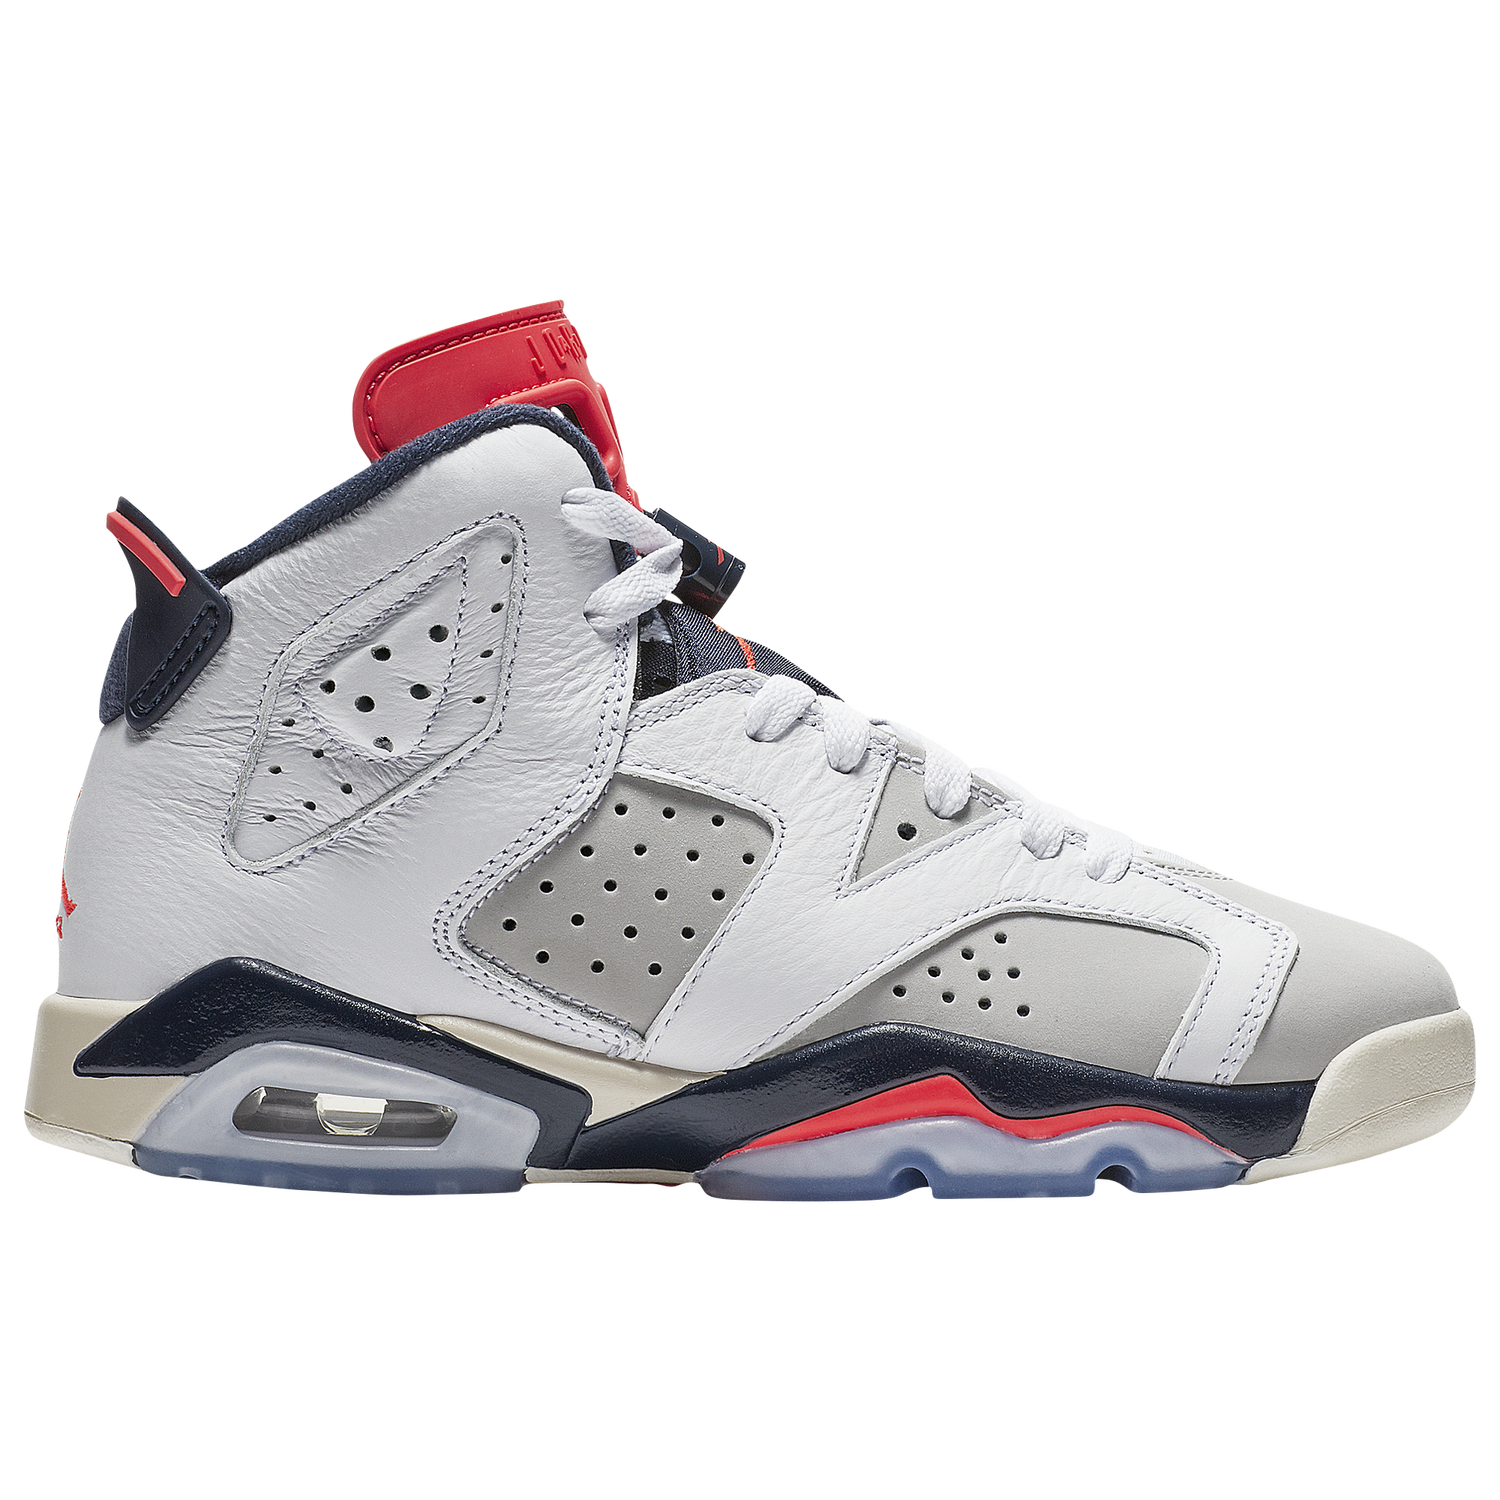 3f478784f369 netherlands air jordan 6 retro infrared 23 for sale nj fe54b 8bca4